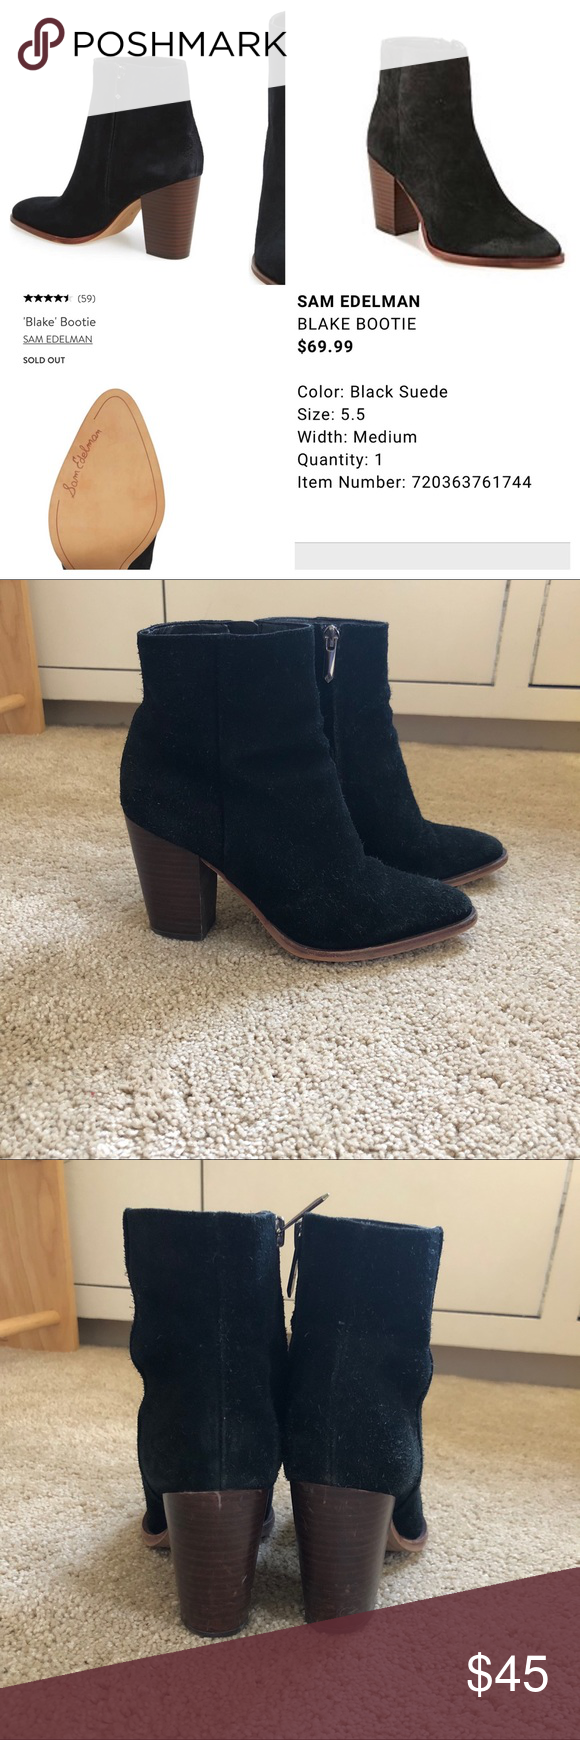 6fc0b08f8eed9 Sam Edelman Blake Booties! RARE FIND. Sold out at Nordstrom s